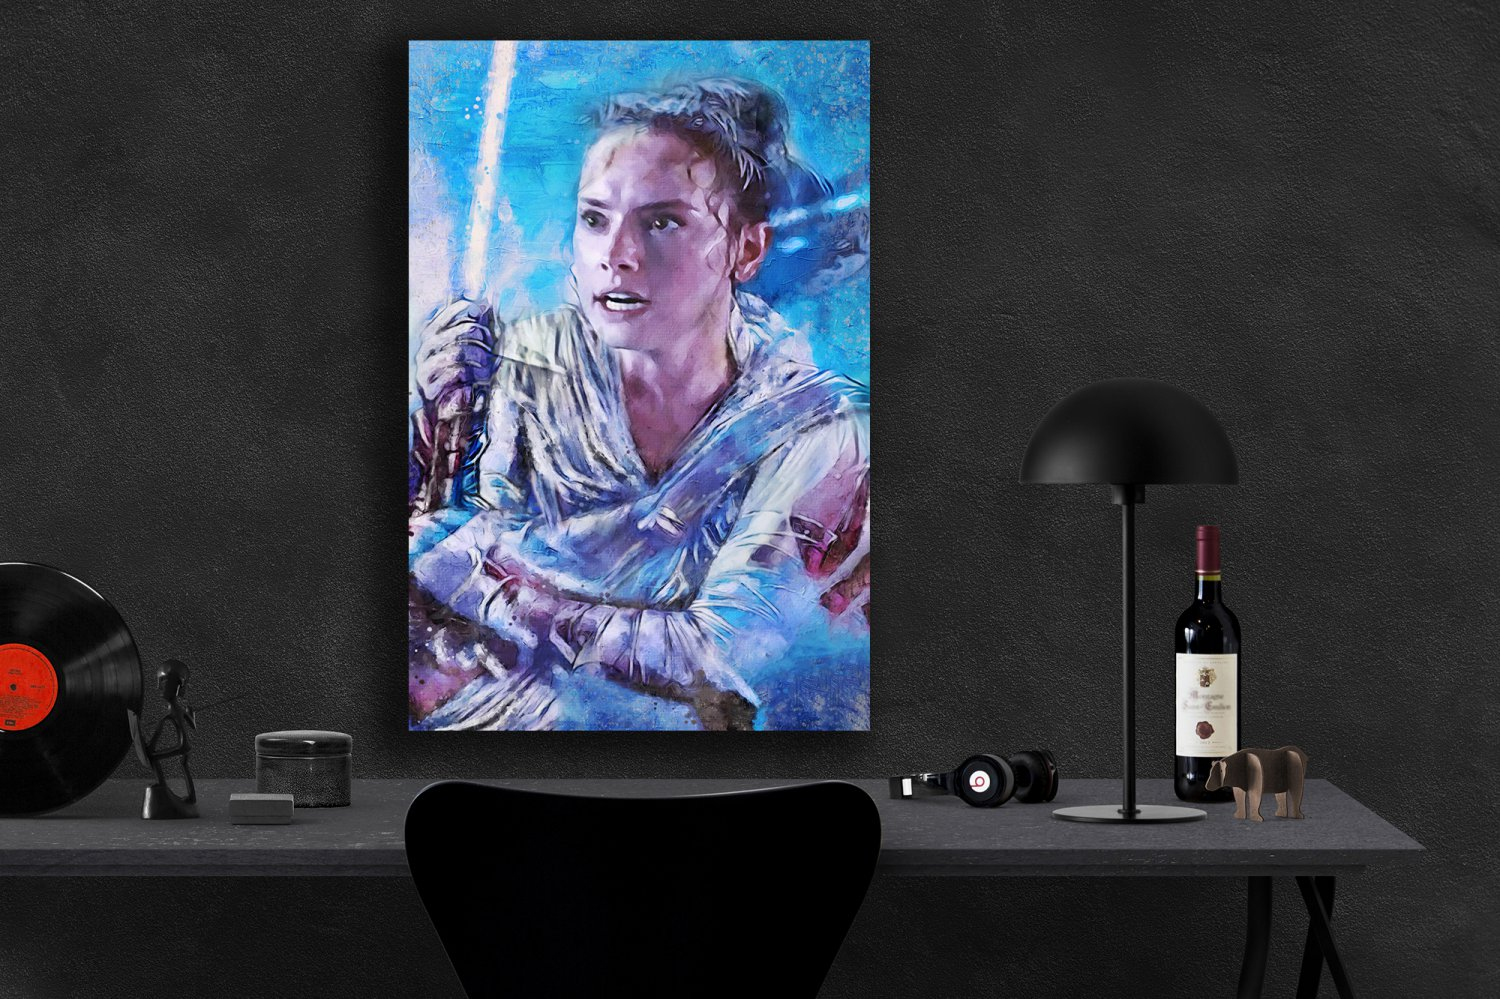 Star Wars The Rise of Skywalker, Rey, Daisy Ridley  13x19 inches Poster Print